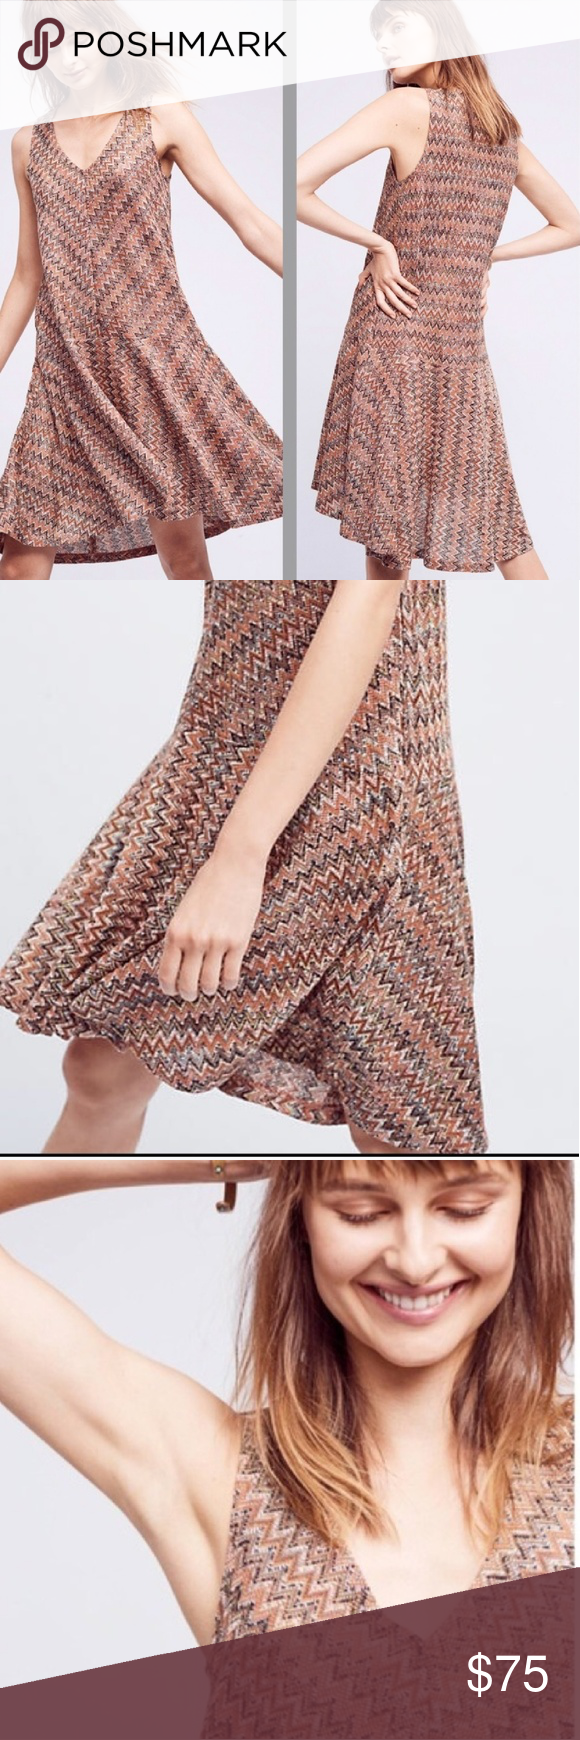 534d50467f08 ANTHROPOLOGIE MAEVE West Water Knit Dress Boho Mod Maeve West Water Knit  Dress Sz.S